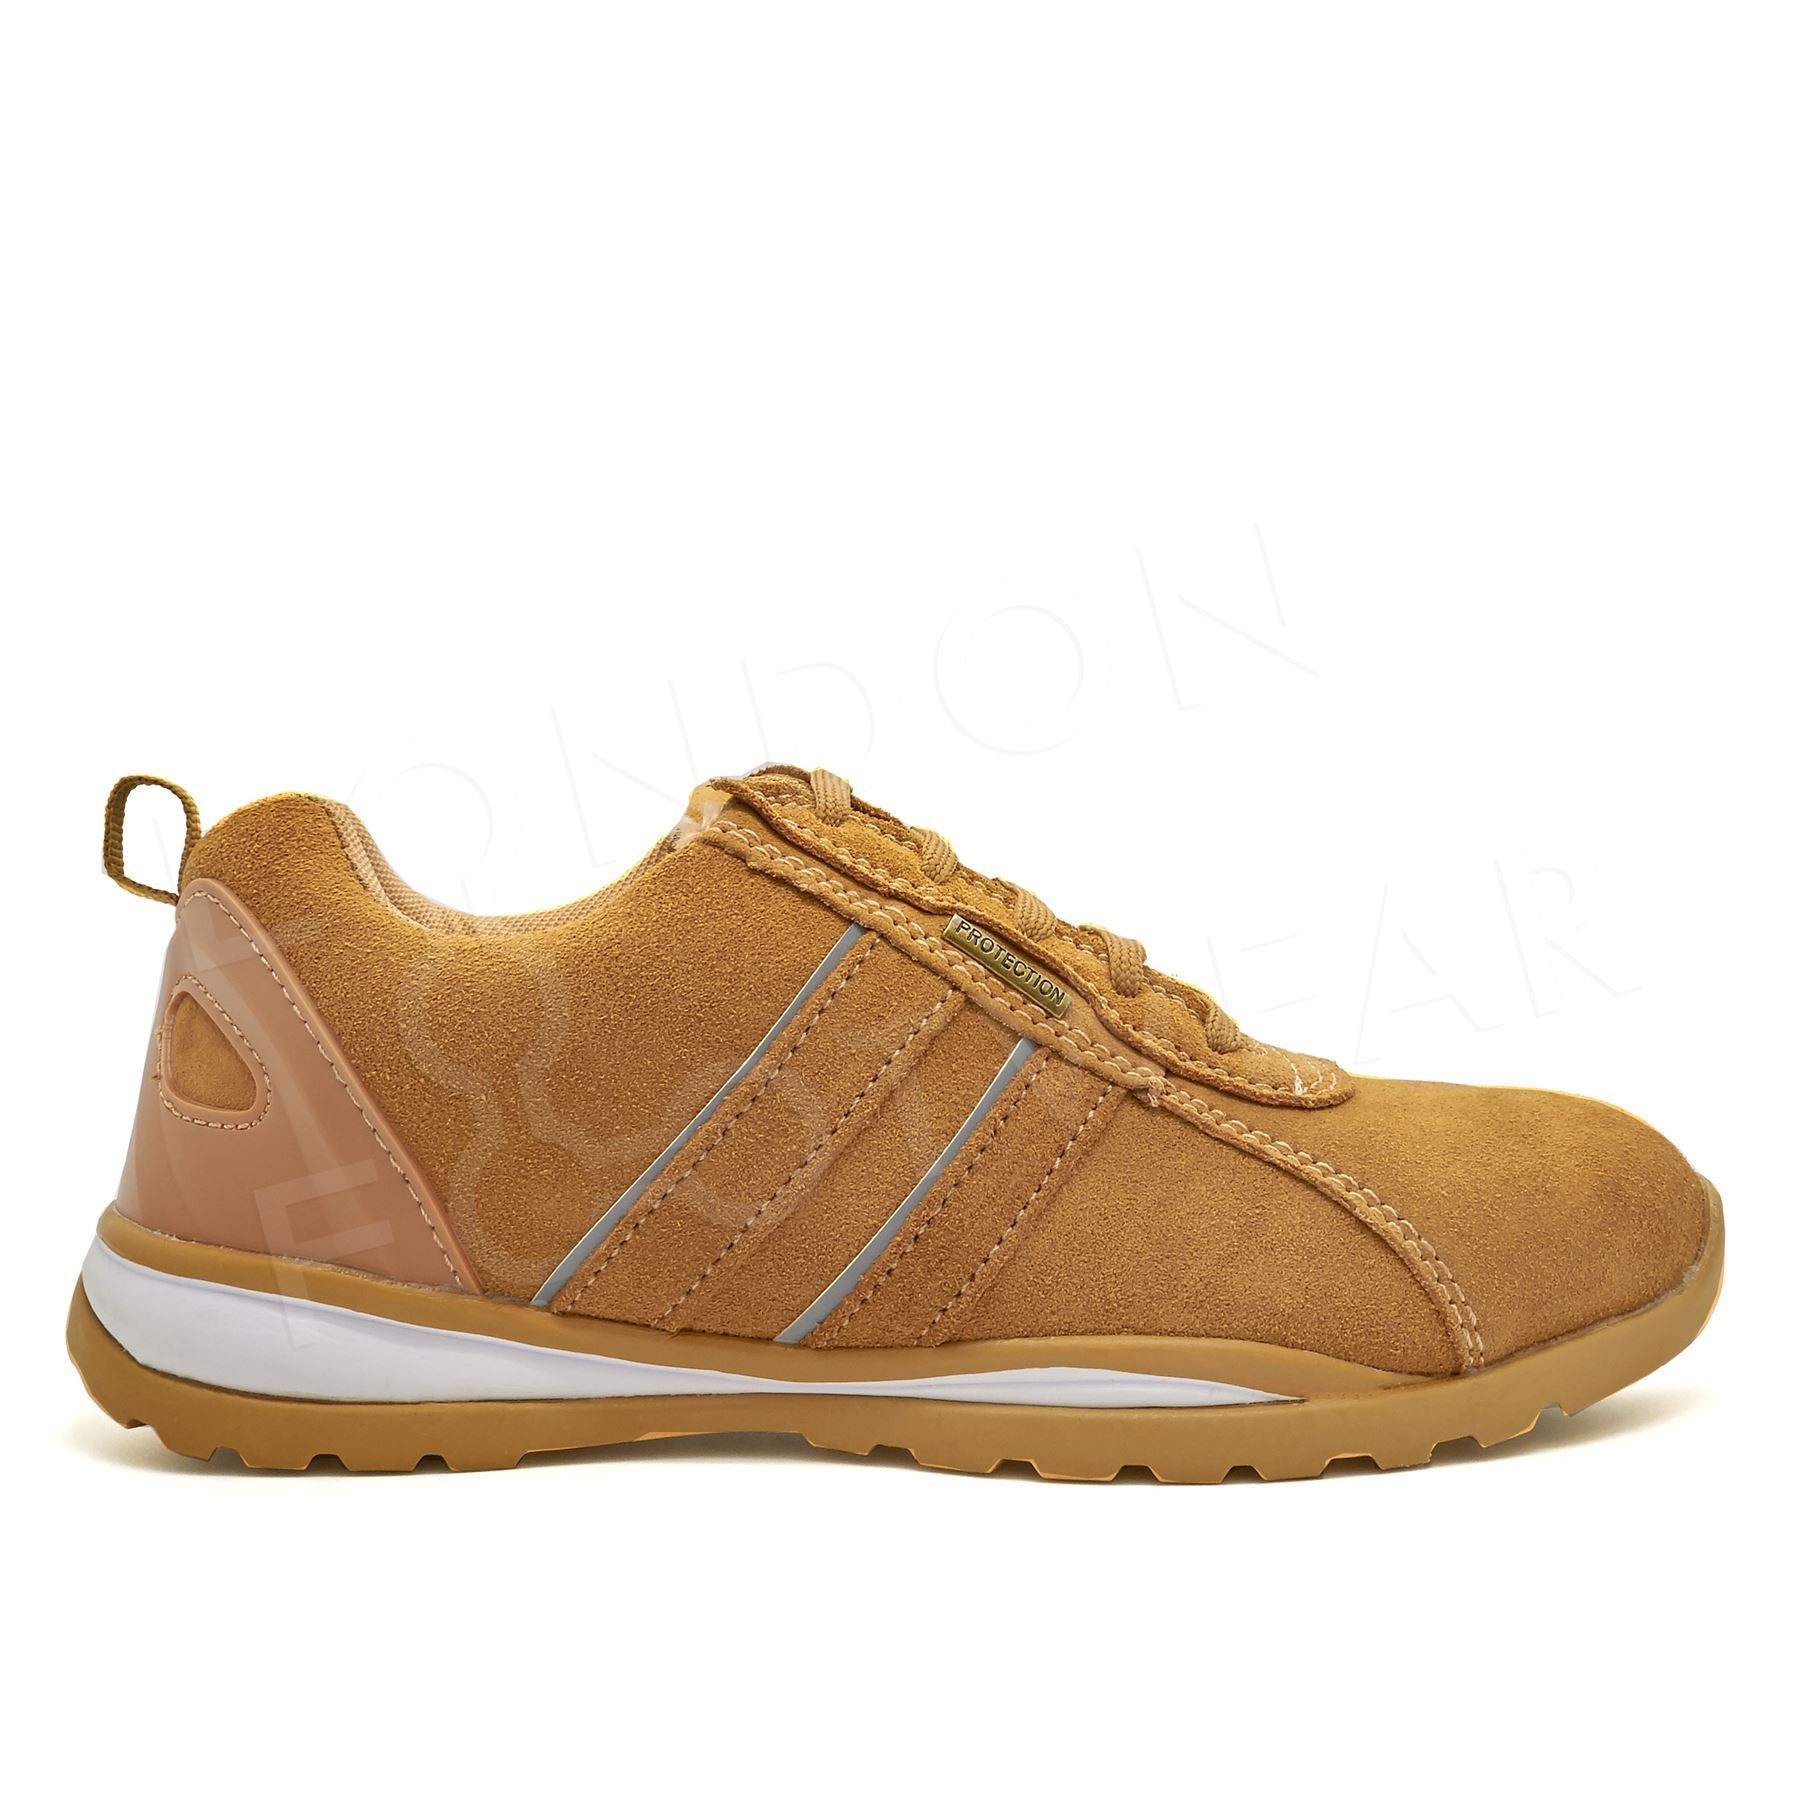 new mens suede safety shoes trainers boots steel toe cap